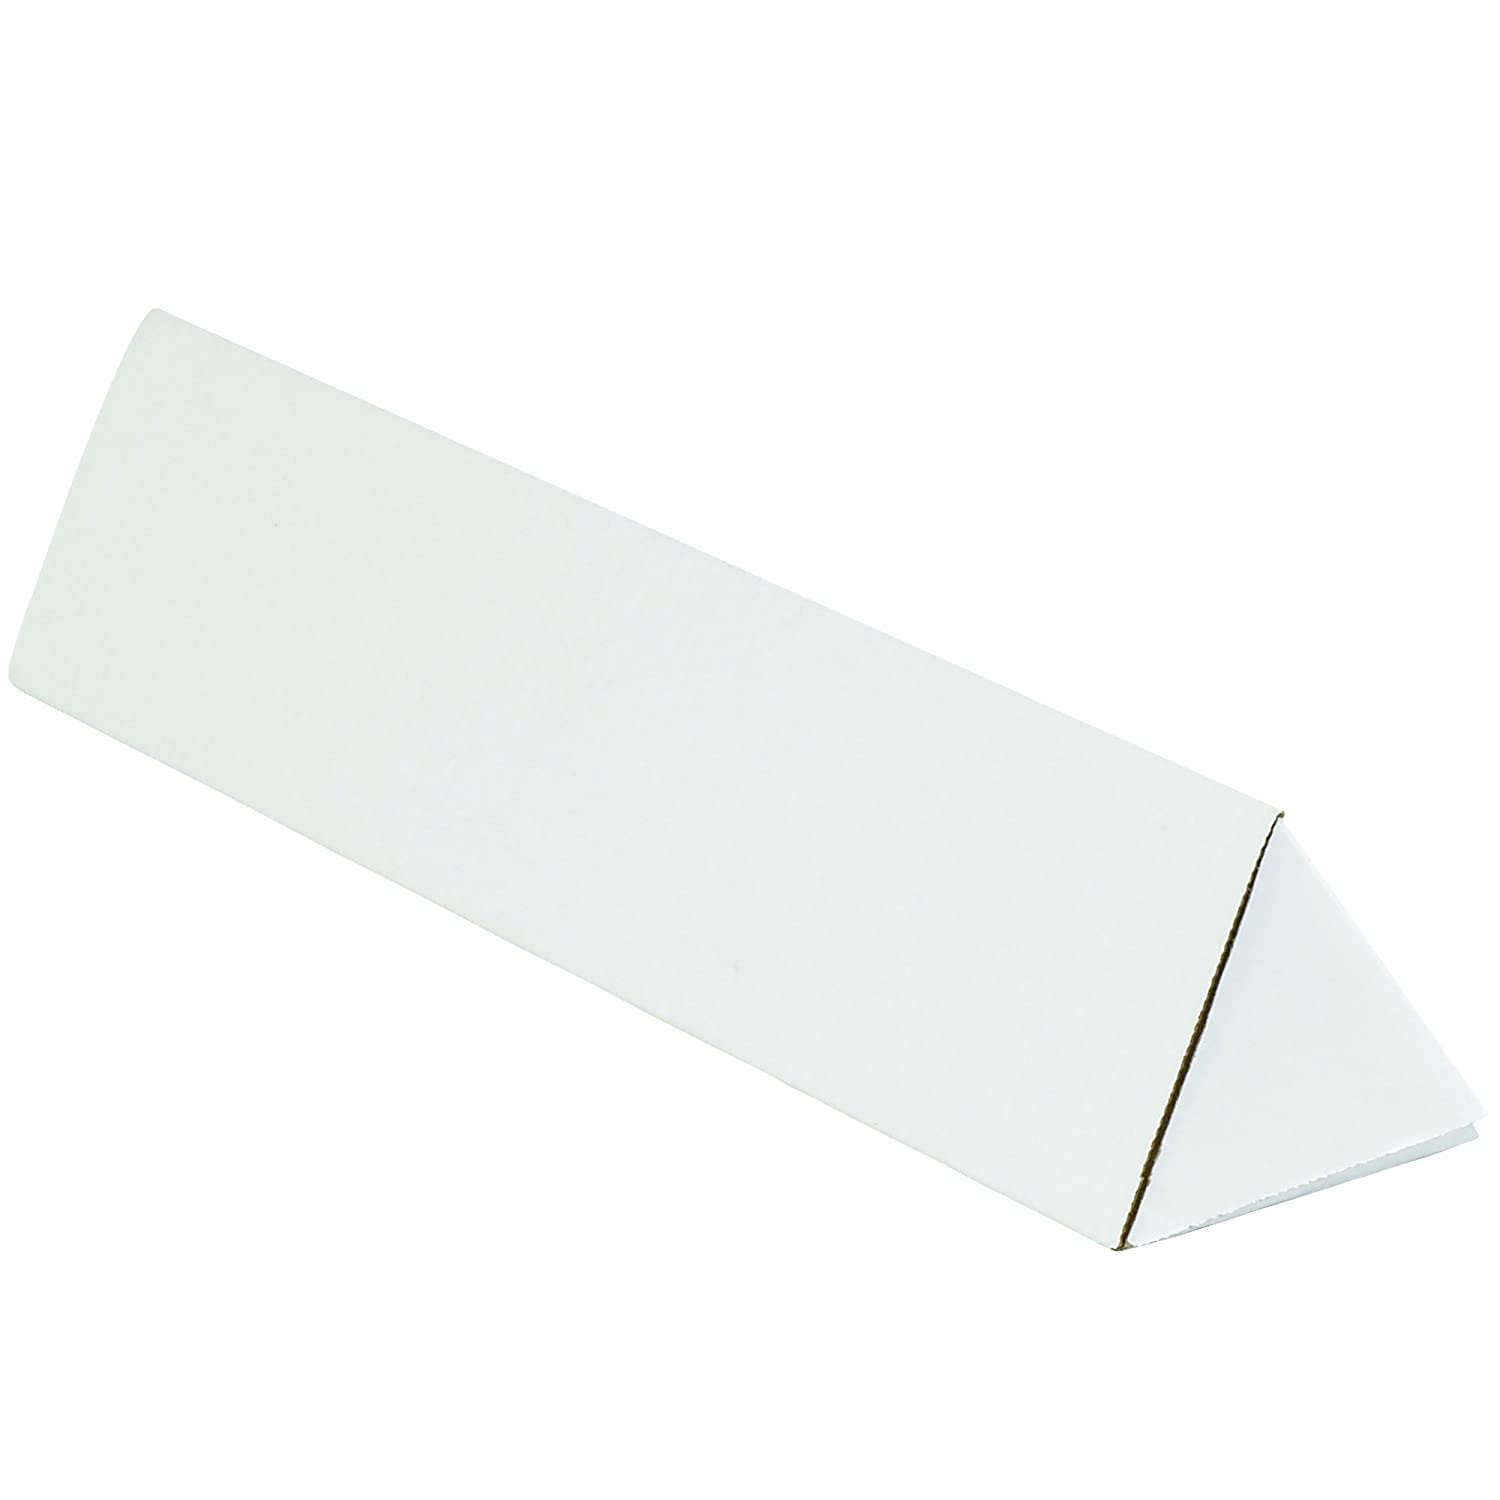 2 x 18-1//4 Pack of 50 Oyster White BOX USA BMTM218 Triangle Mailing Tubes